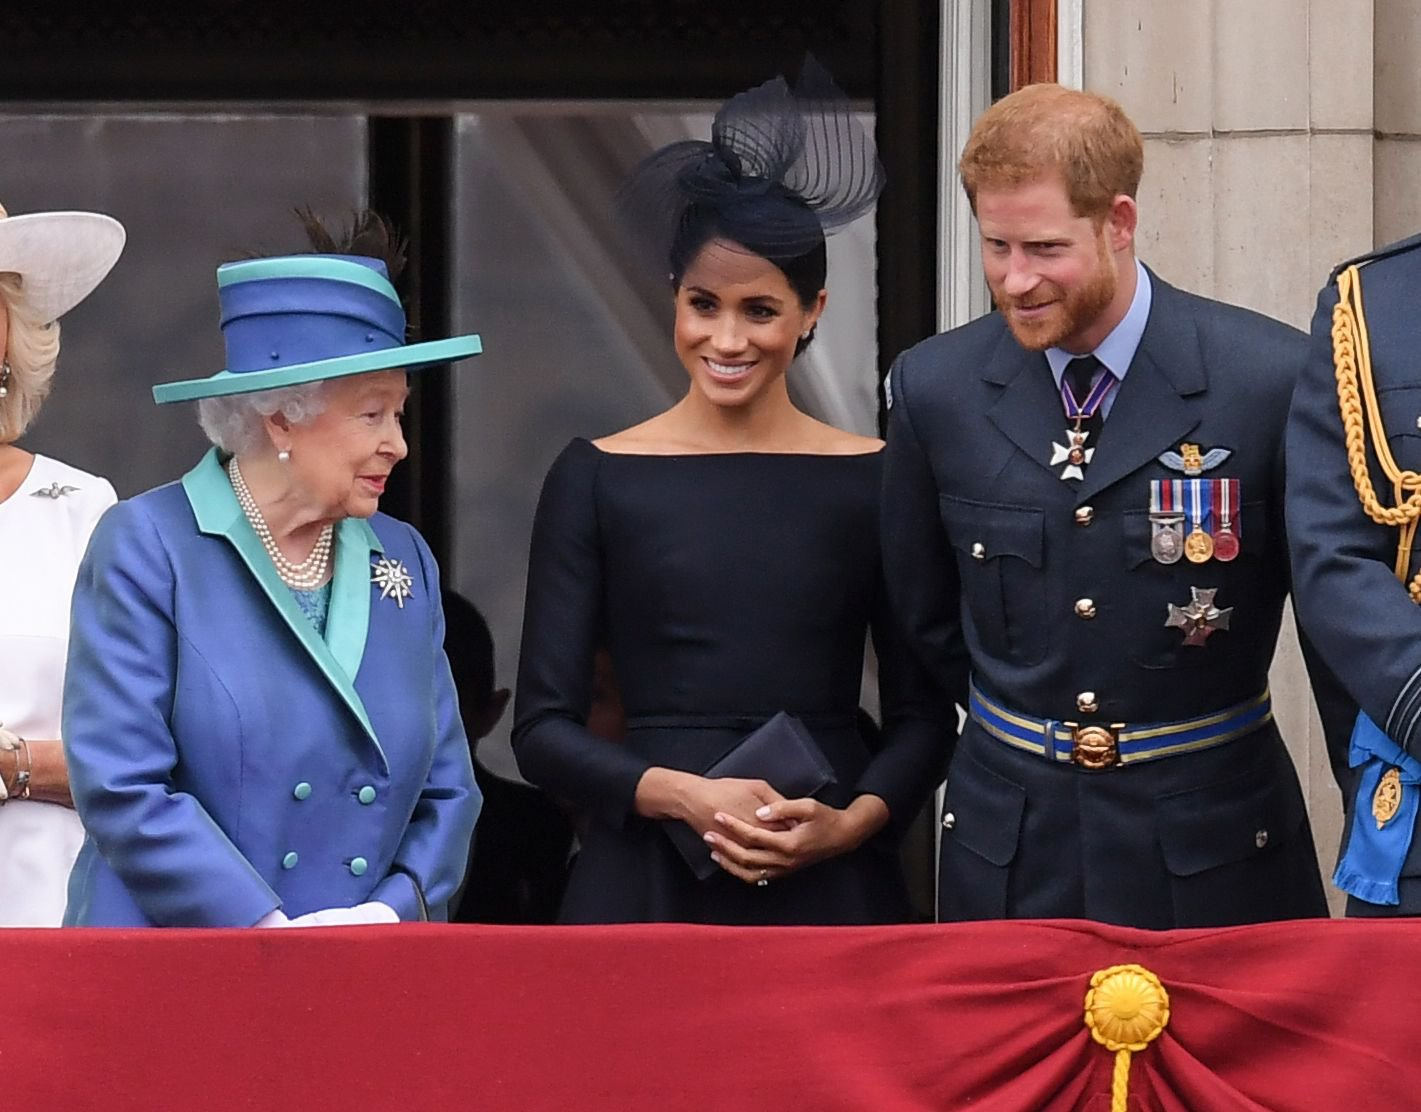 Mandatory Credit: Photo by David Fisher/REX/Shutterstock (9753789x) Queen Elizabeth II, Meghan Duchess of Sussex and Prince Harry on the balcony of Buckingham Palace 100th Anniversary of the Royal Air Force, London, UK - 10 Jul 2018